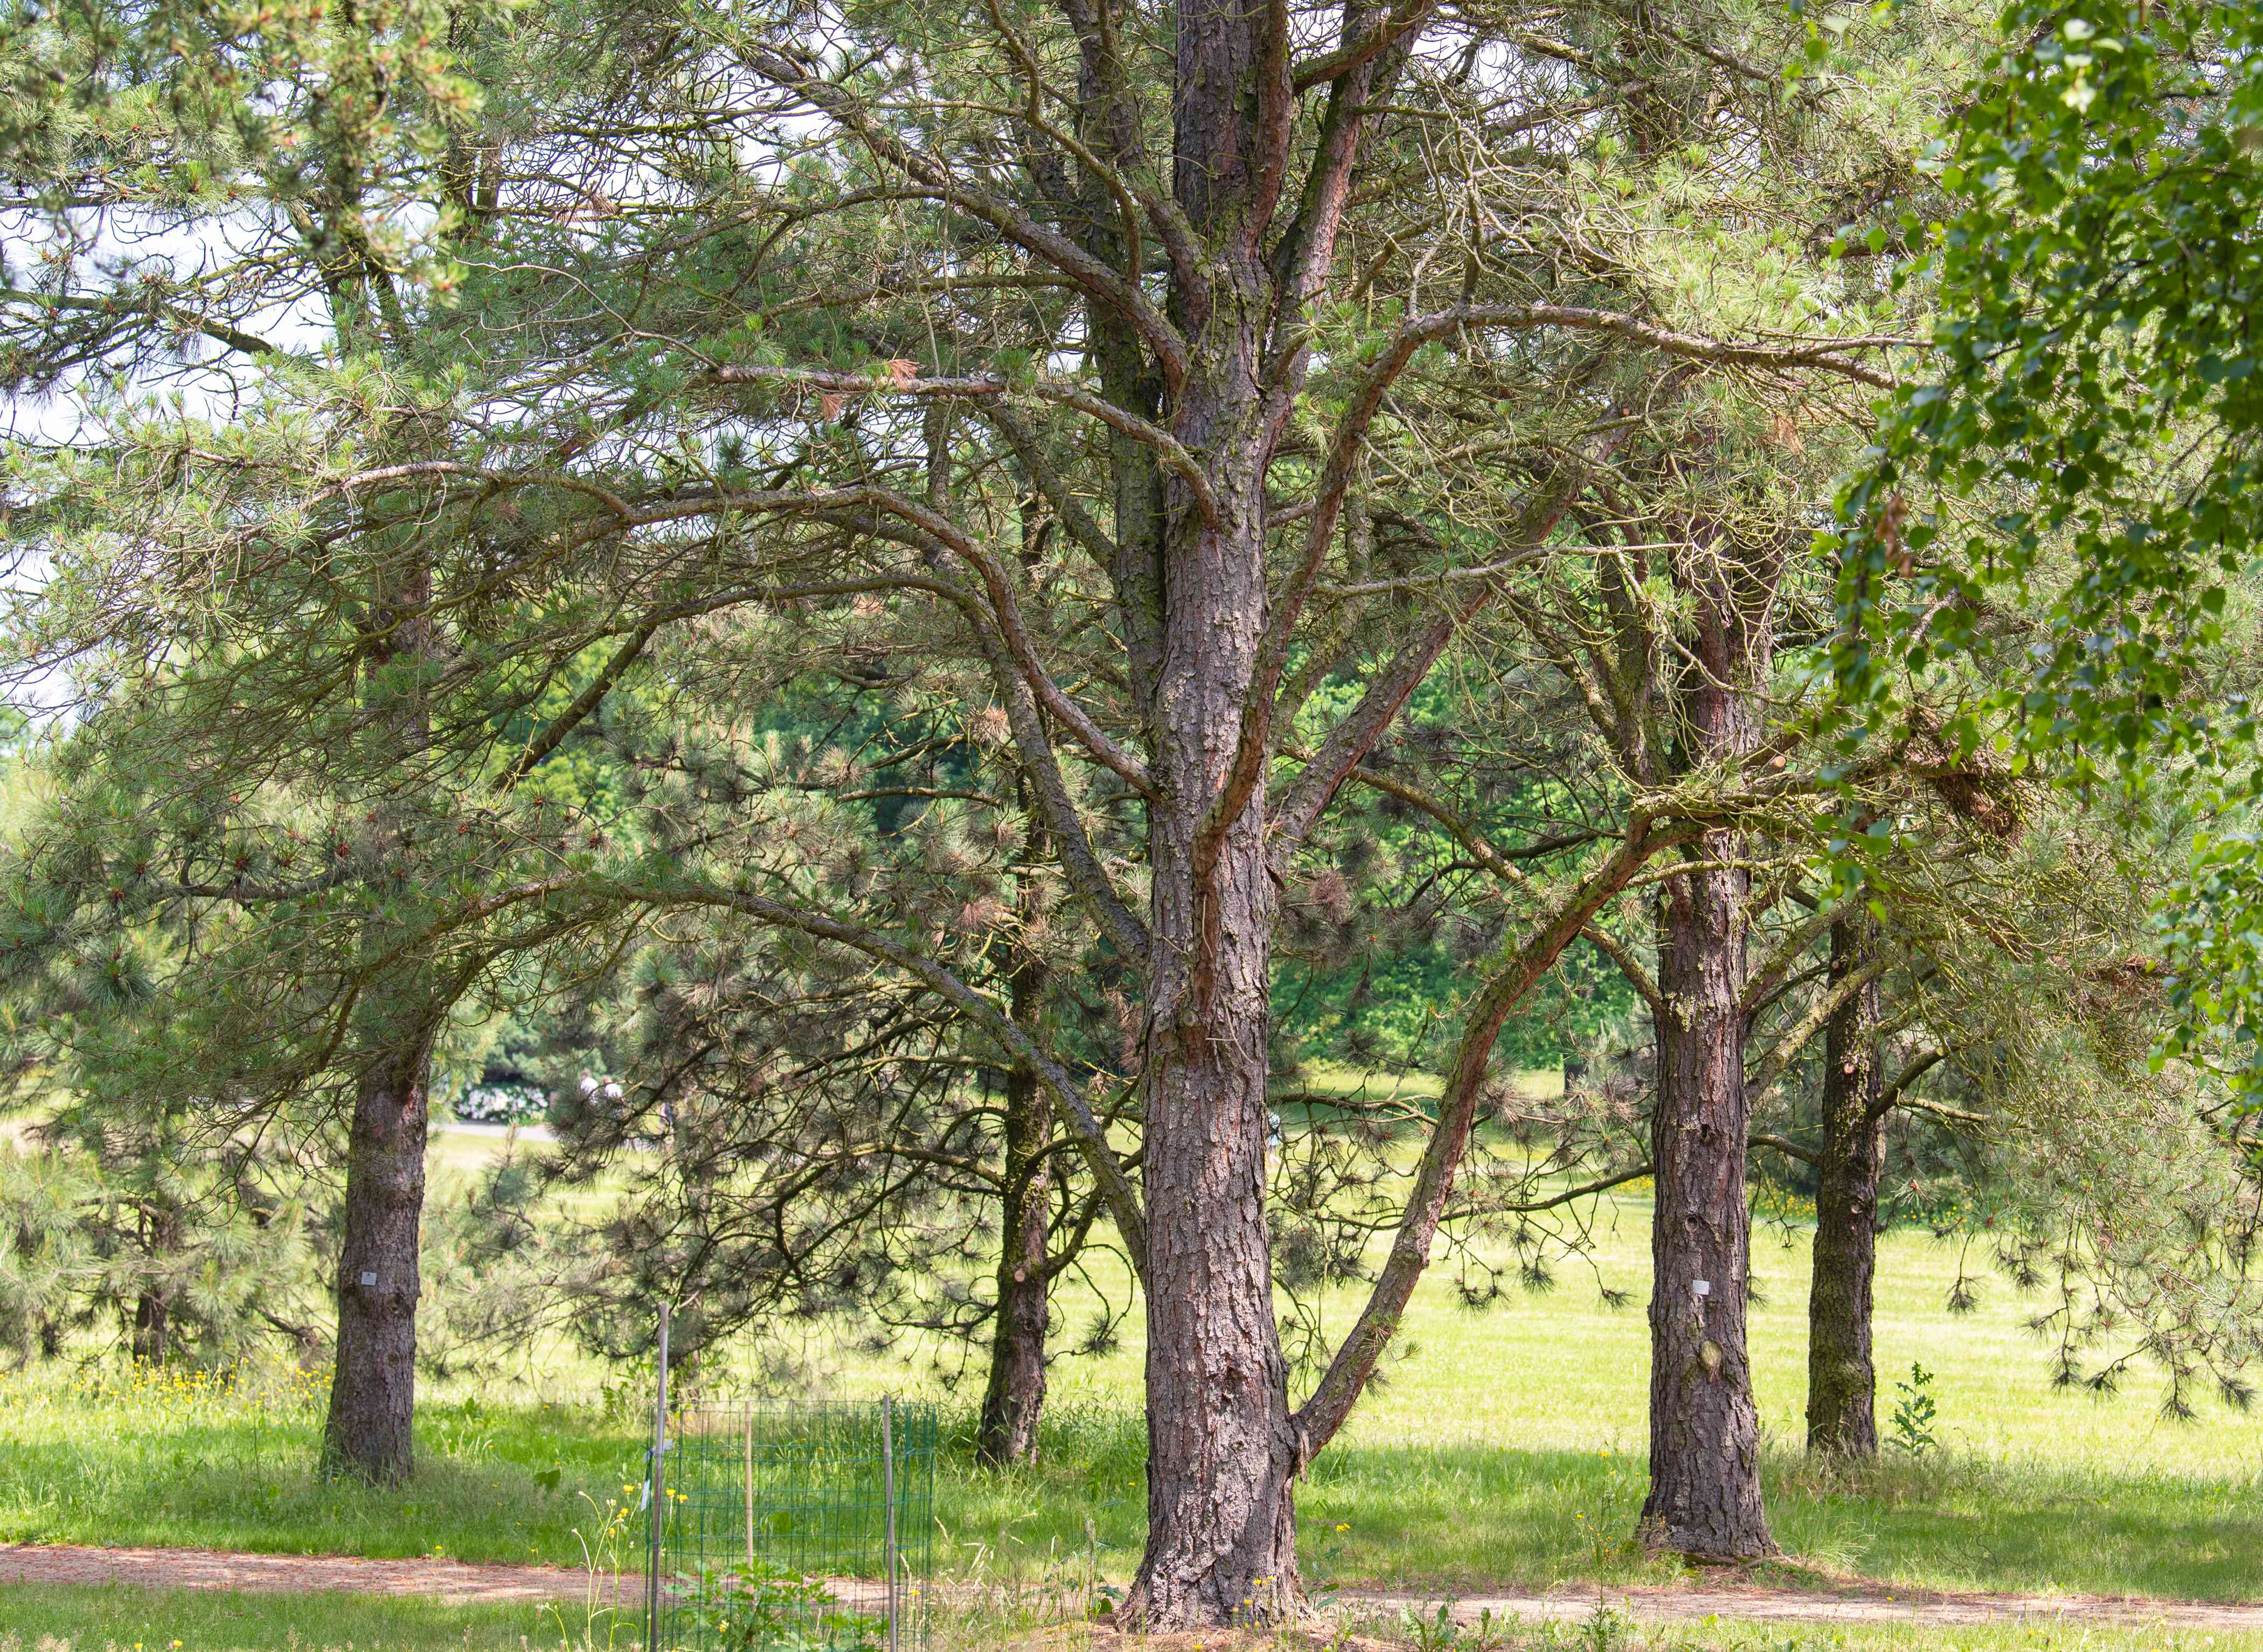 Pitch pine tree with bare twisting branches in middle of forested area